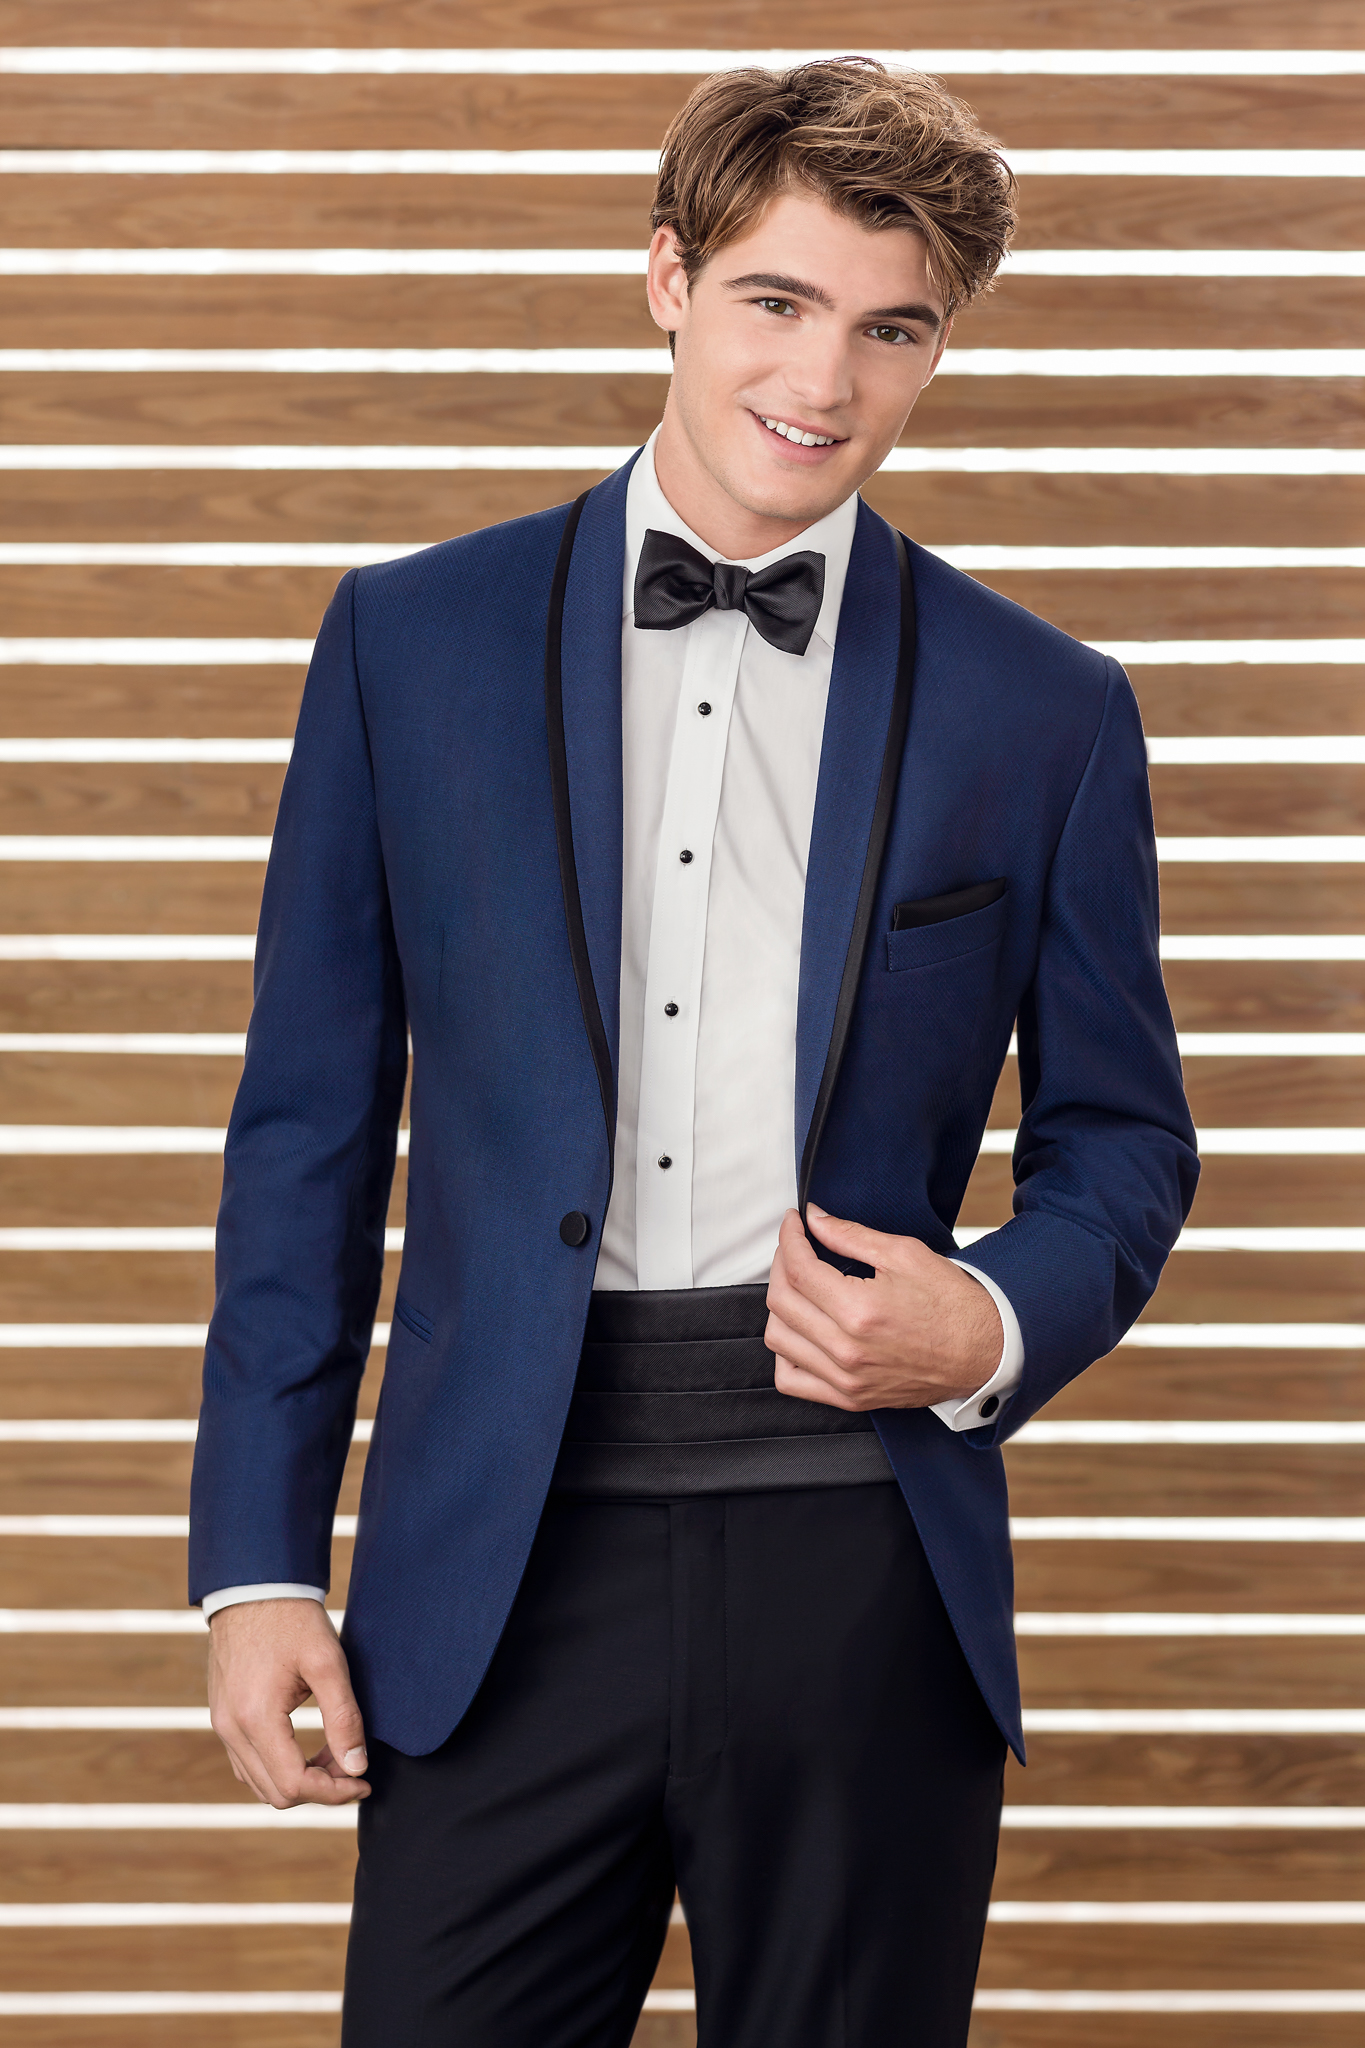 Prom Night 2018...Step Out in Style - Foresto Tuxedo | Wedding and ...